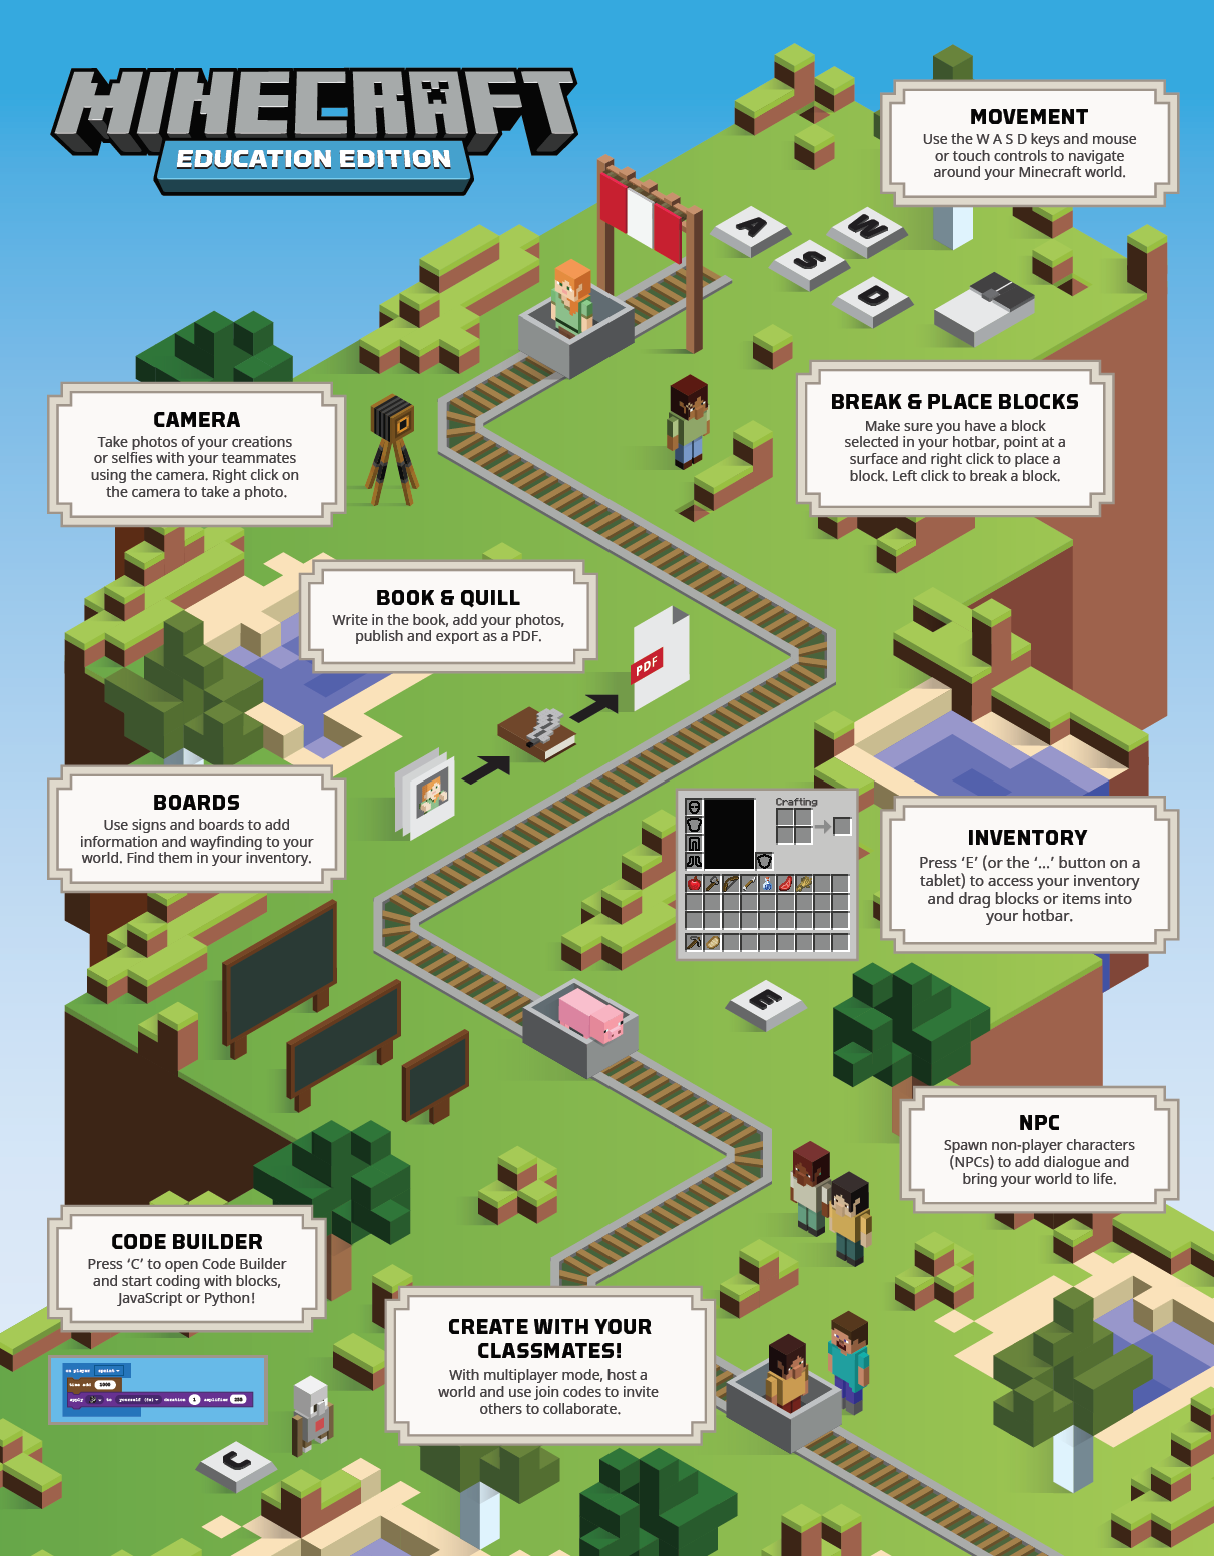 Printable Minecraft Education Edition Poster